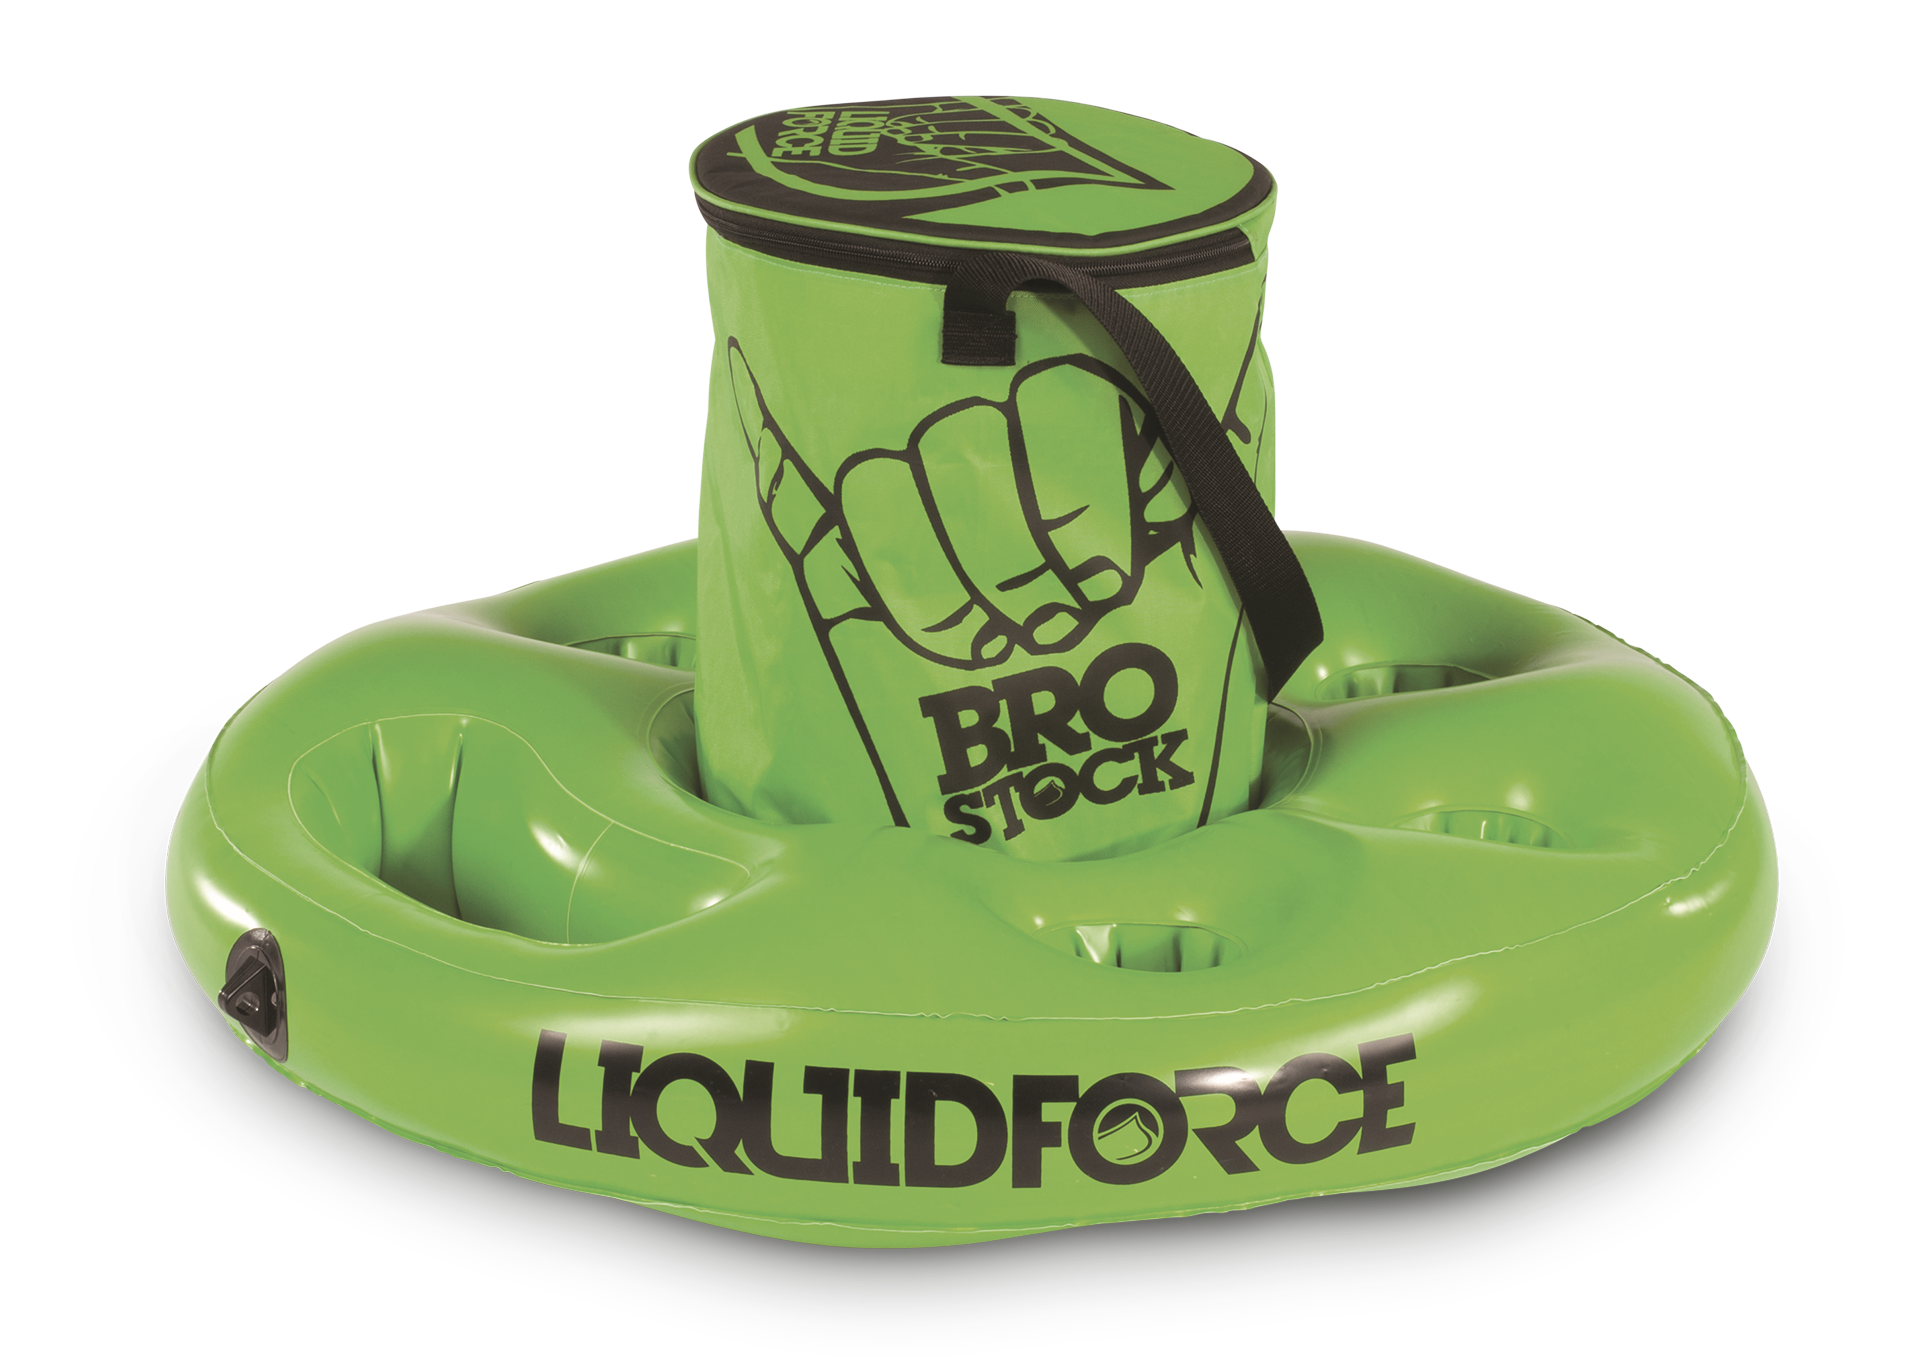 LF PARTY STATION FLOAT COOLER